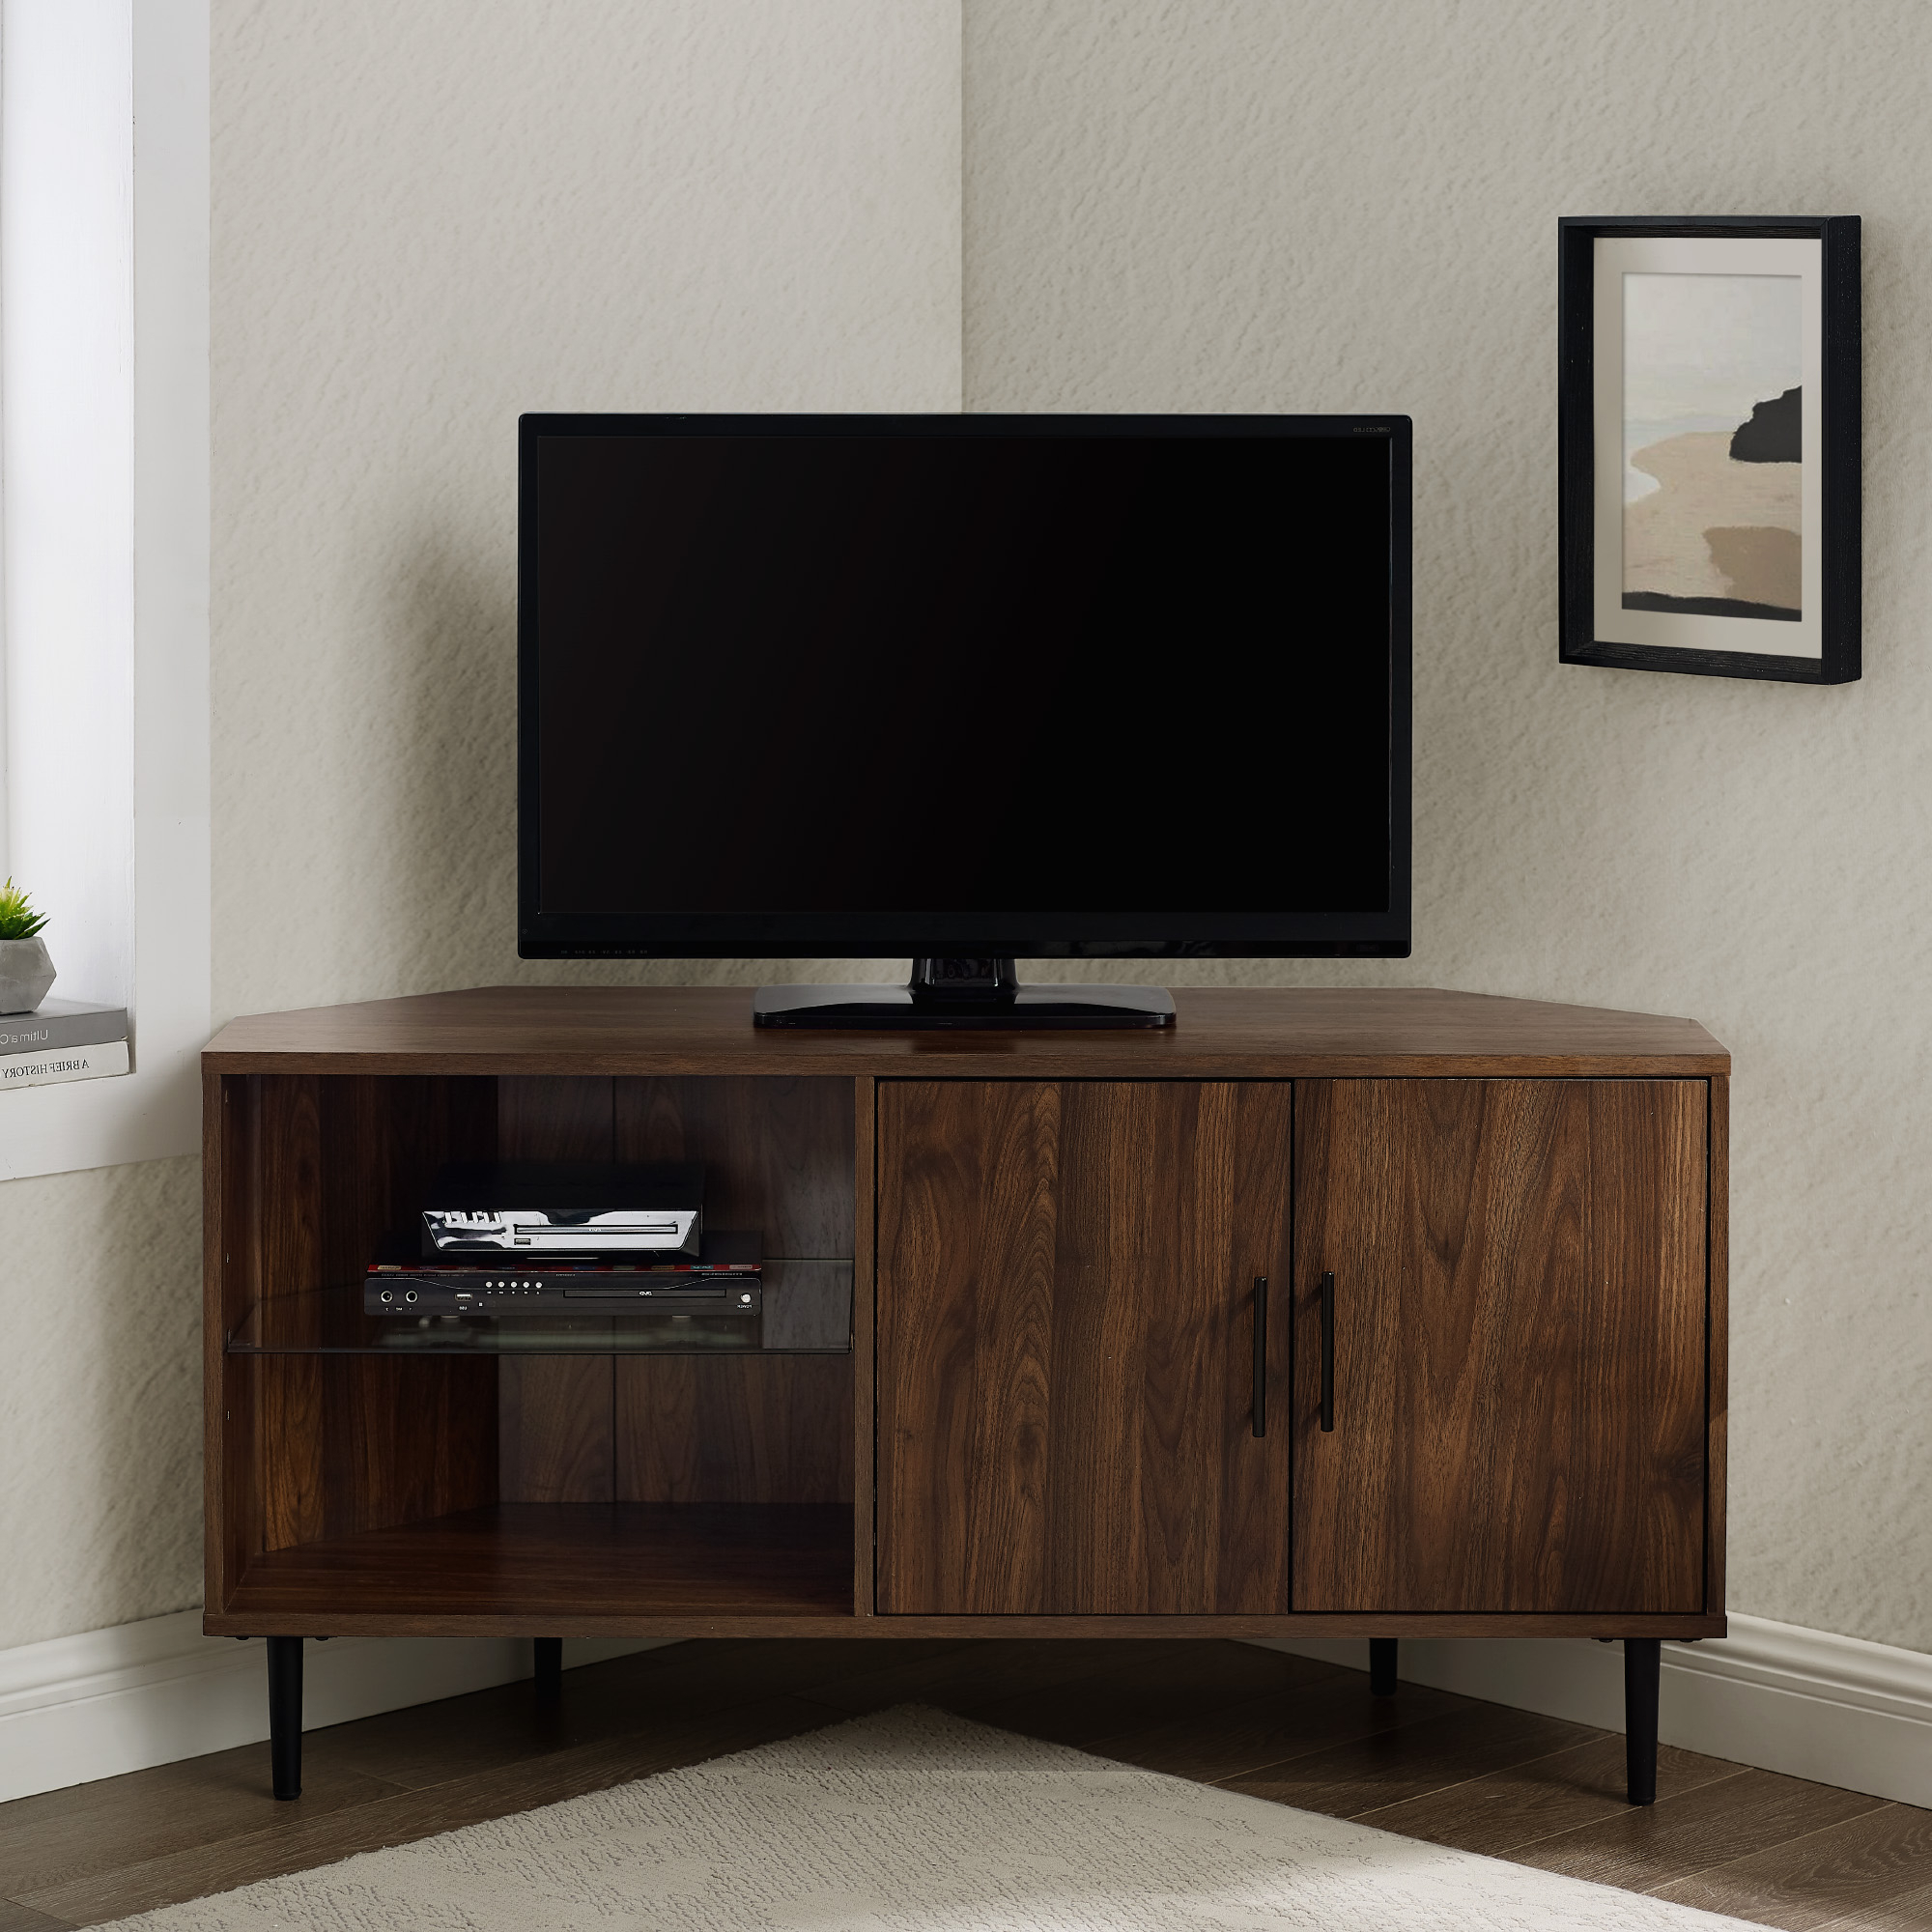 """Manor Park Basie 2 Door Corner Tv Stand For Tvs Up To 55 In Twila Tv Stands For Tvs Up To 55"""" (View 7 of 20)"""